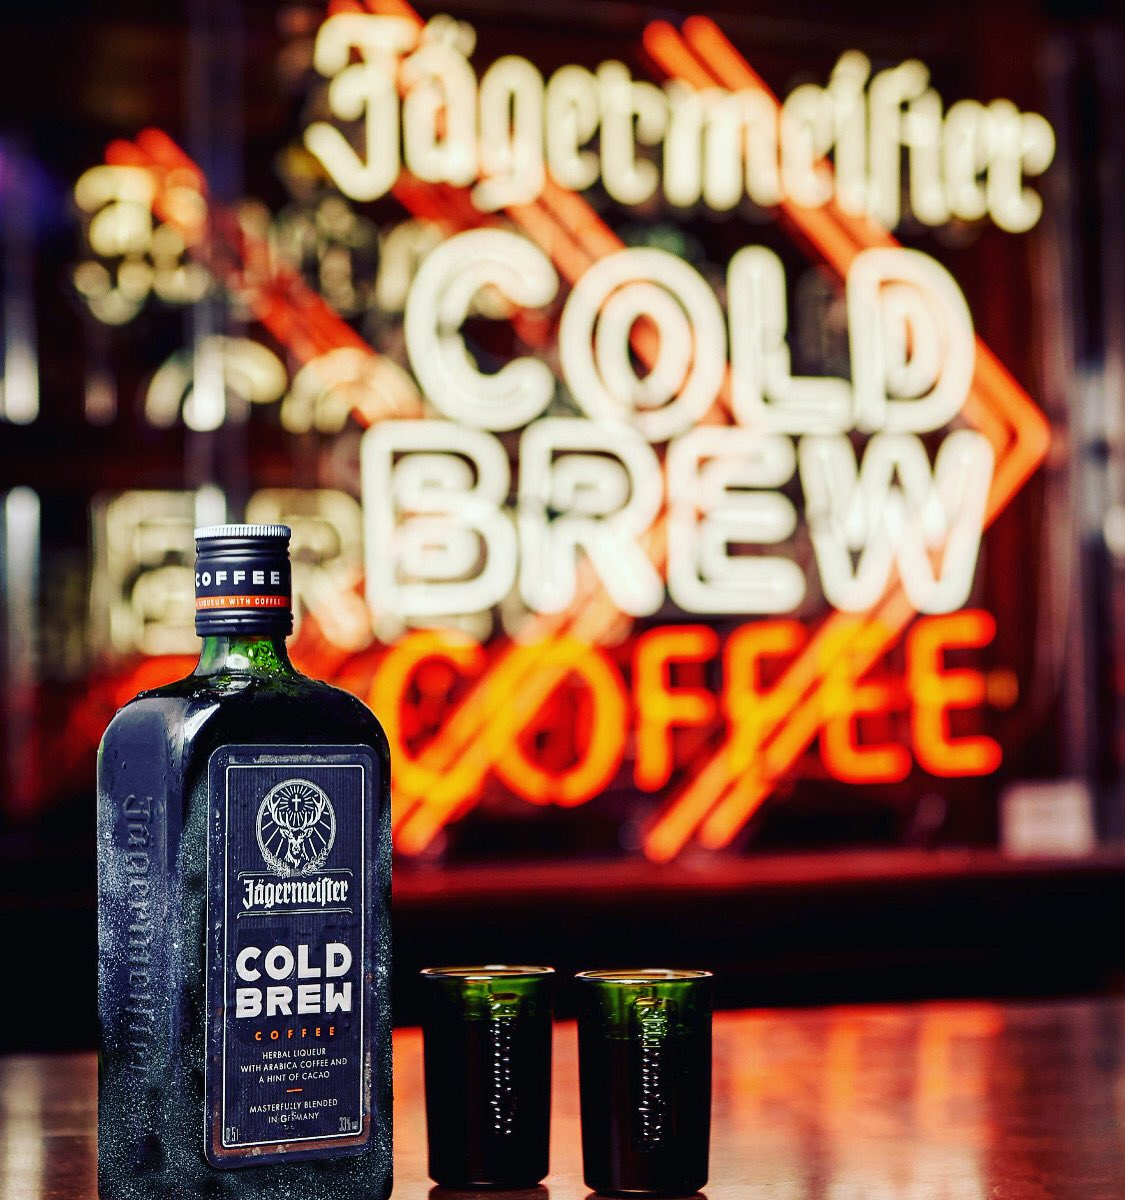 NEW😎#JagerColdBrewCoffee☕️ #PROMO☠️ #Madness🙀@OutRInn🏡 7️⃣HUGE @jagermeister #PROMOS🏒 Feb 28th March 20th•27th April 3rd•10th•17th @10pm‼️ #Samples #Swag #Party🎉 #Jager💚🧡#JagerChill❄️#DeersBlood🦌 #56ingredients🌿#JagermeisterLove🖤 #Meister🥃#NHL🥅#CBJ